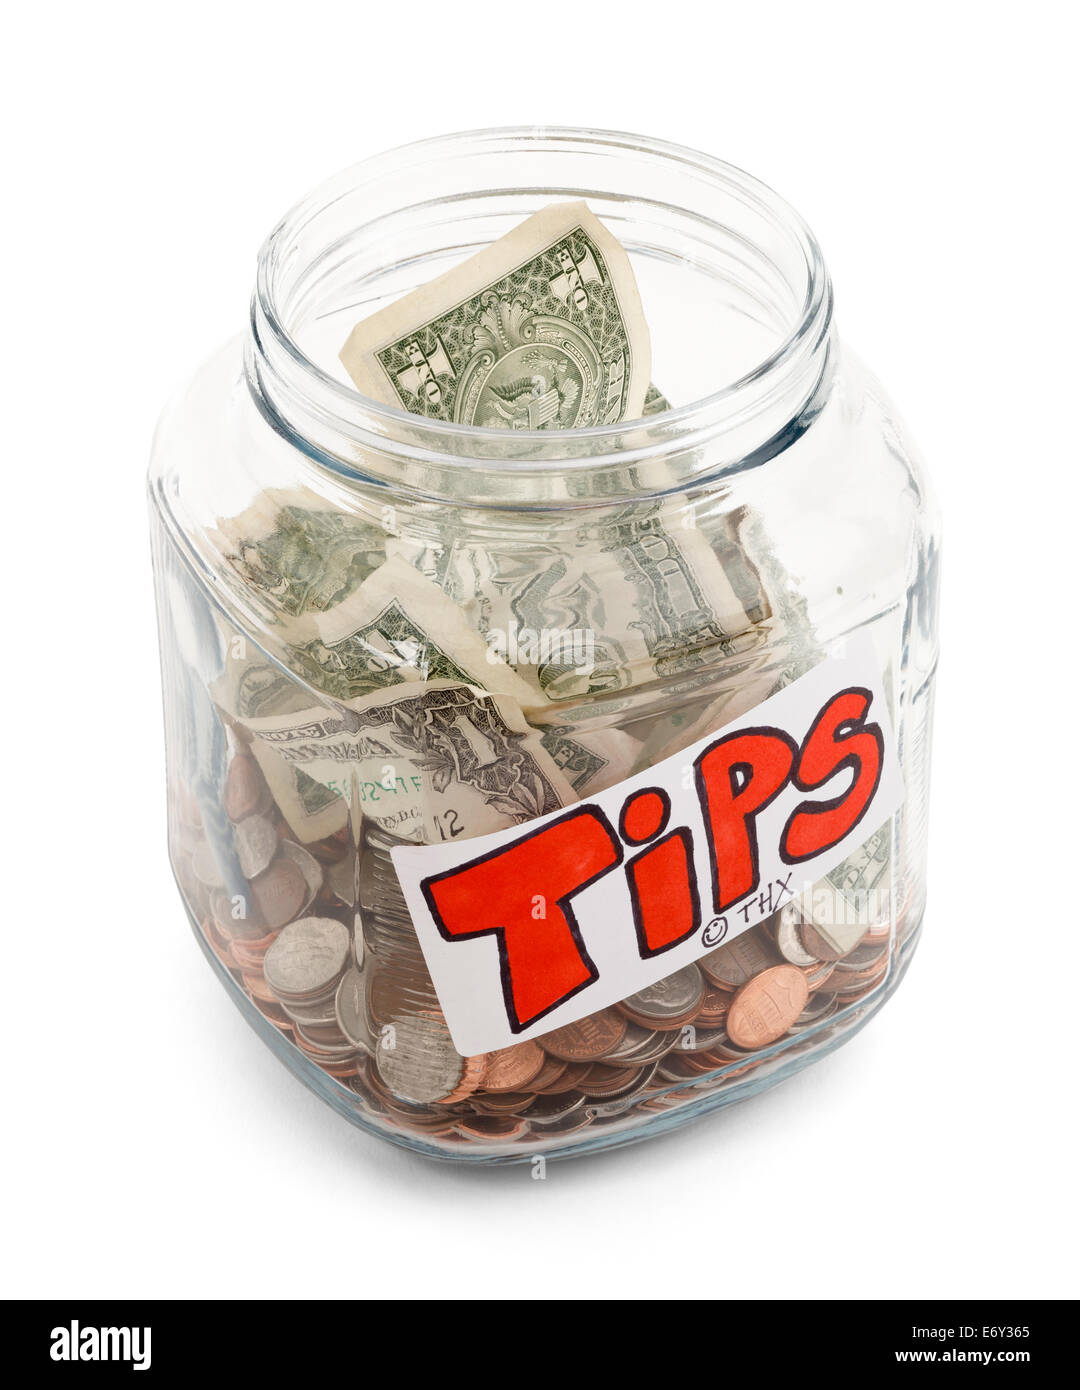 Glass Jar half full of money with a tips label on it, isolated on a white background with drop shadow. - Stock Image